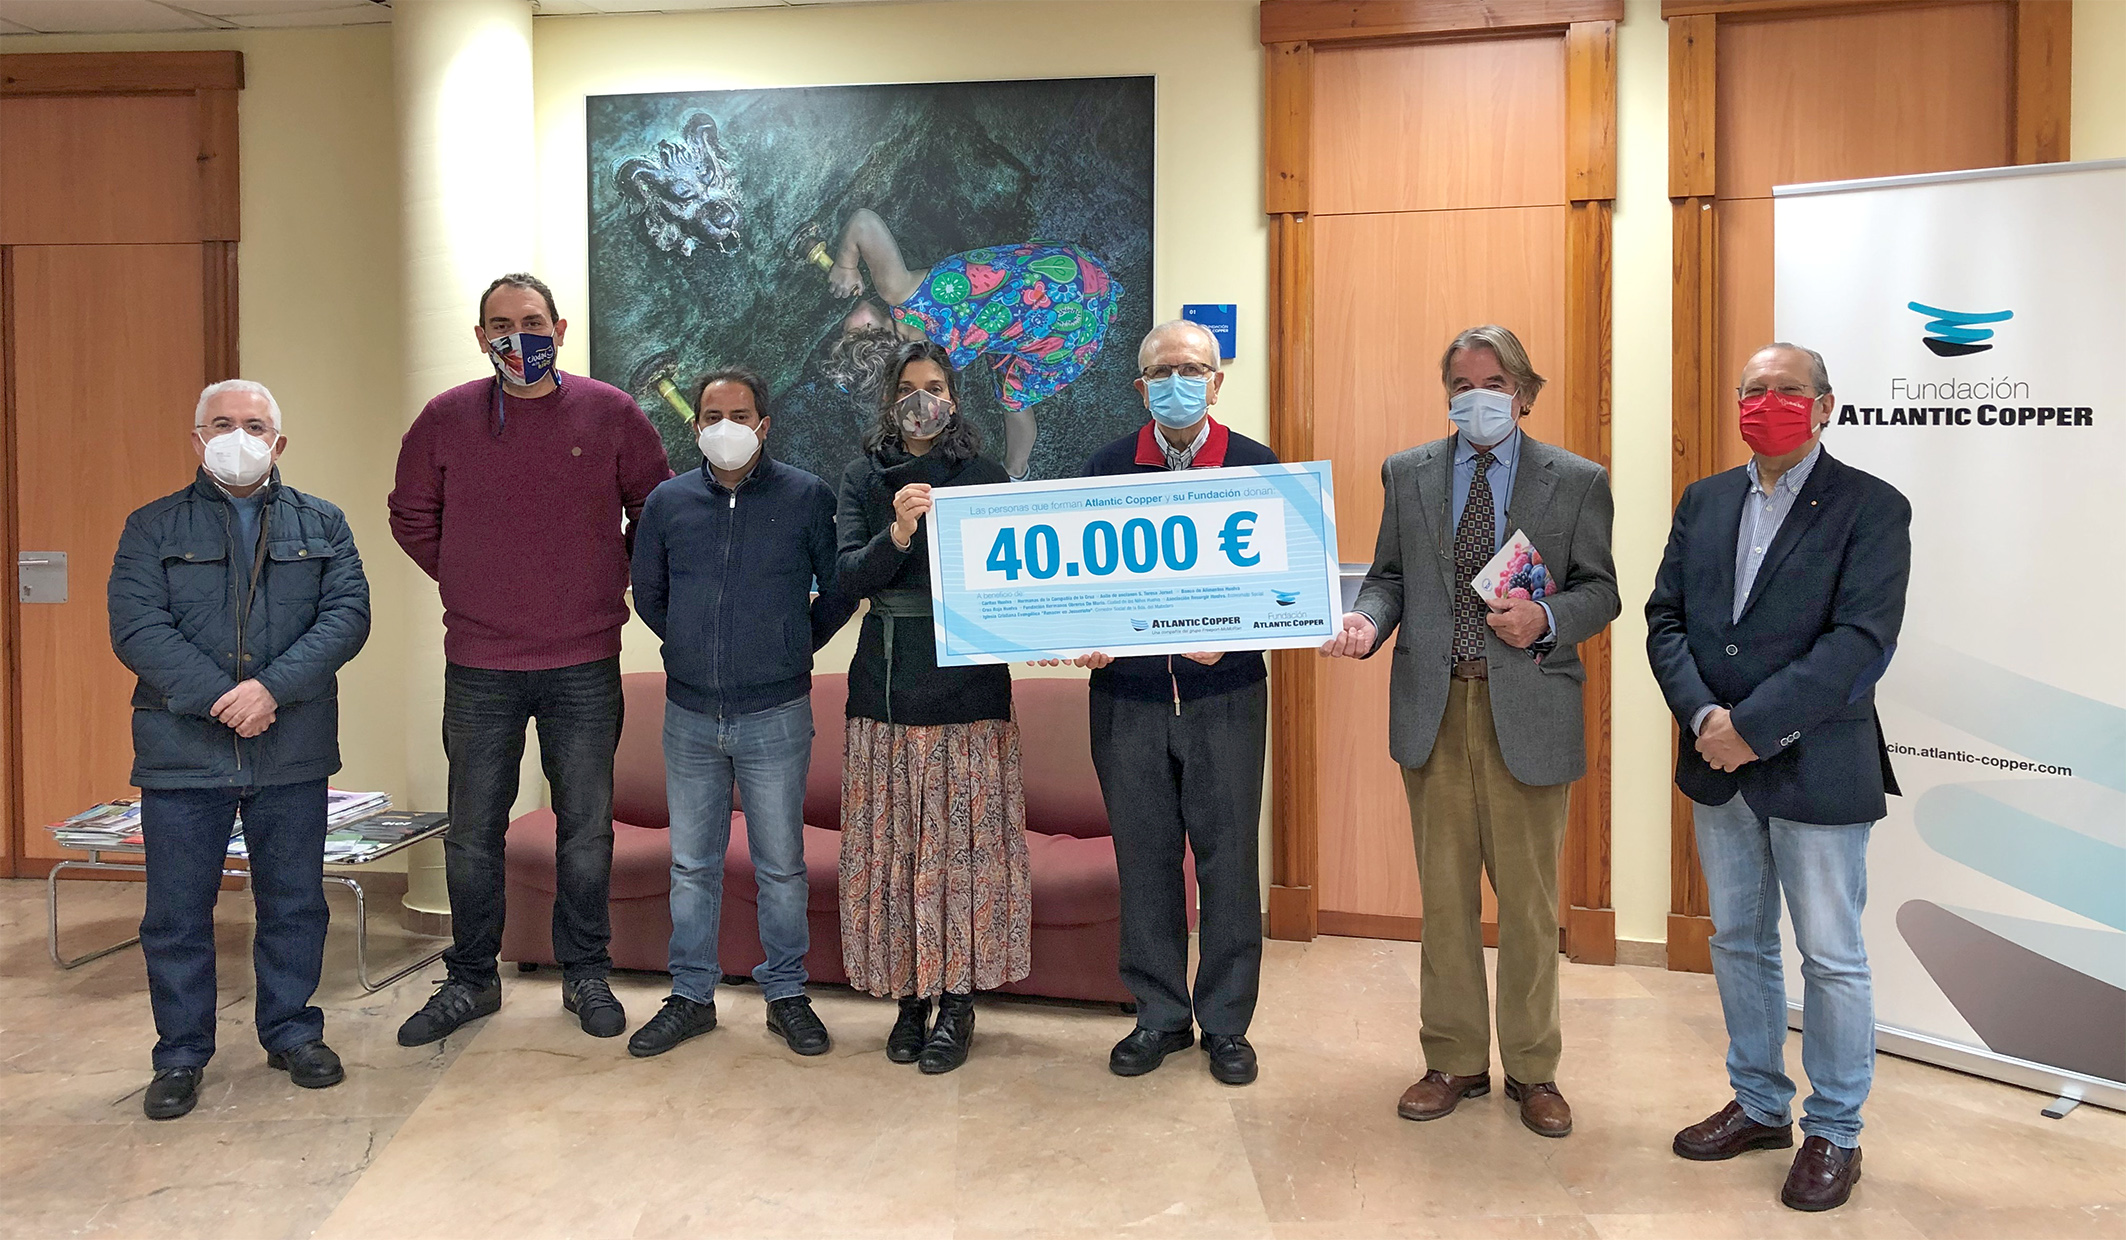 Cheque Solidario Fundacion Atlantic Cooper